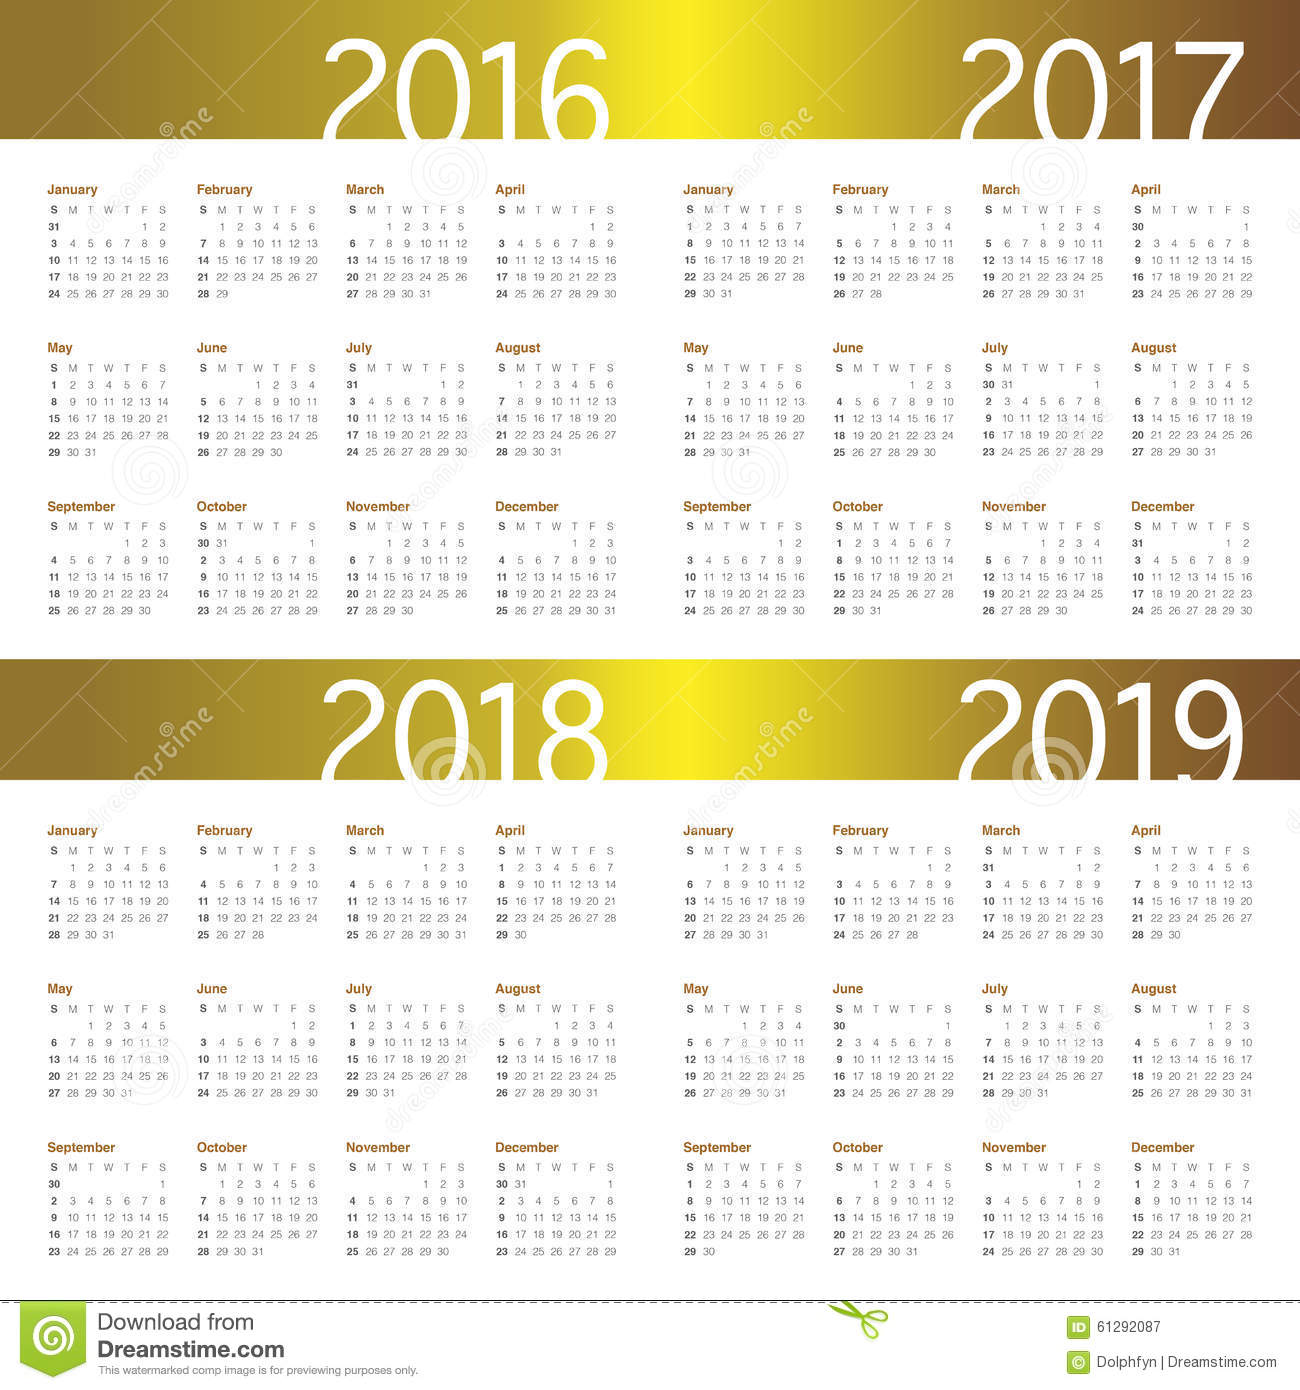 2019: Calendar For 2018 And 2019 Royalty-Free Stock Photography